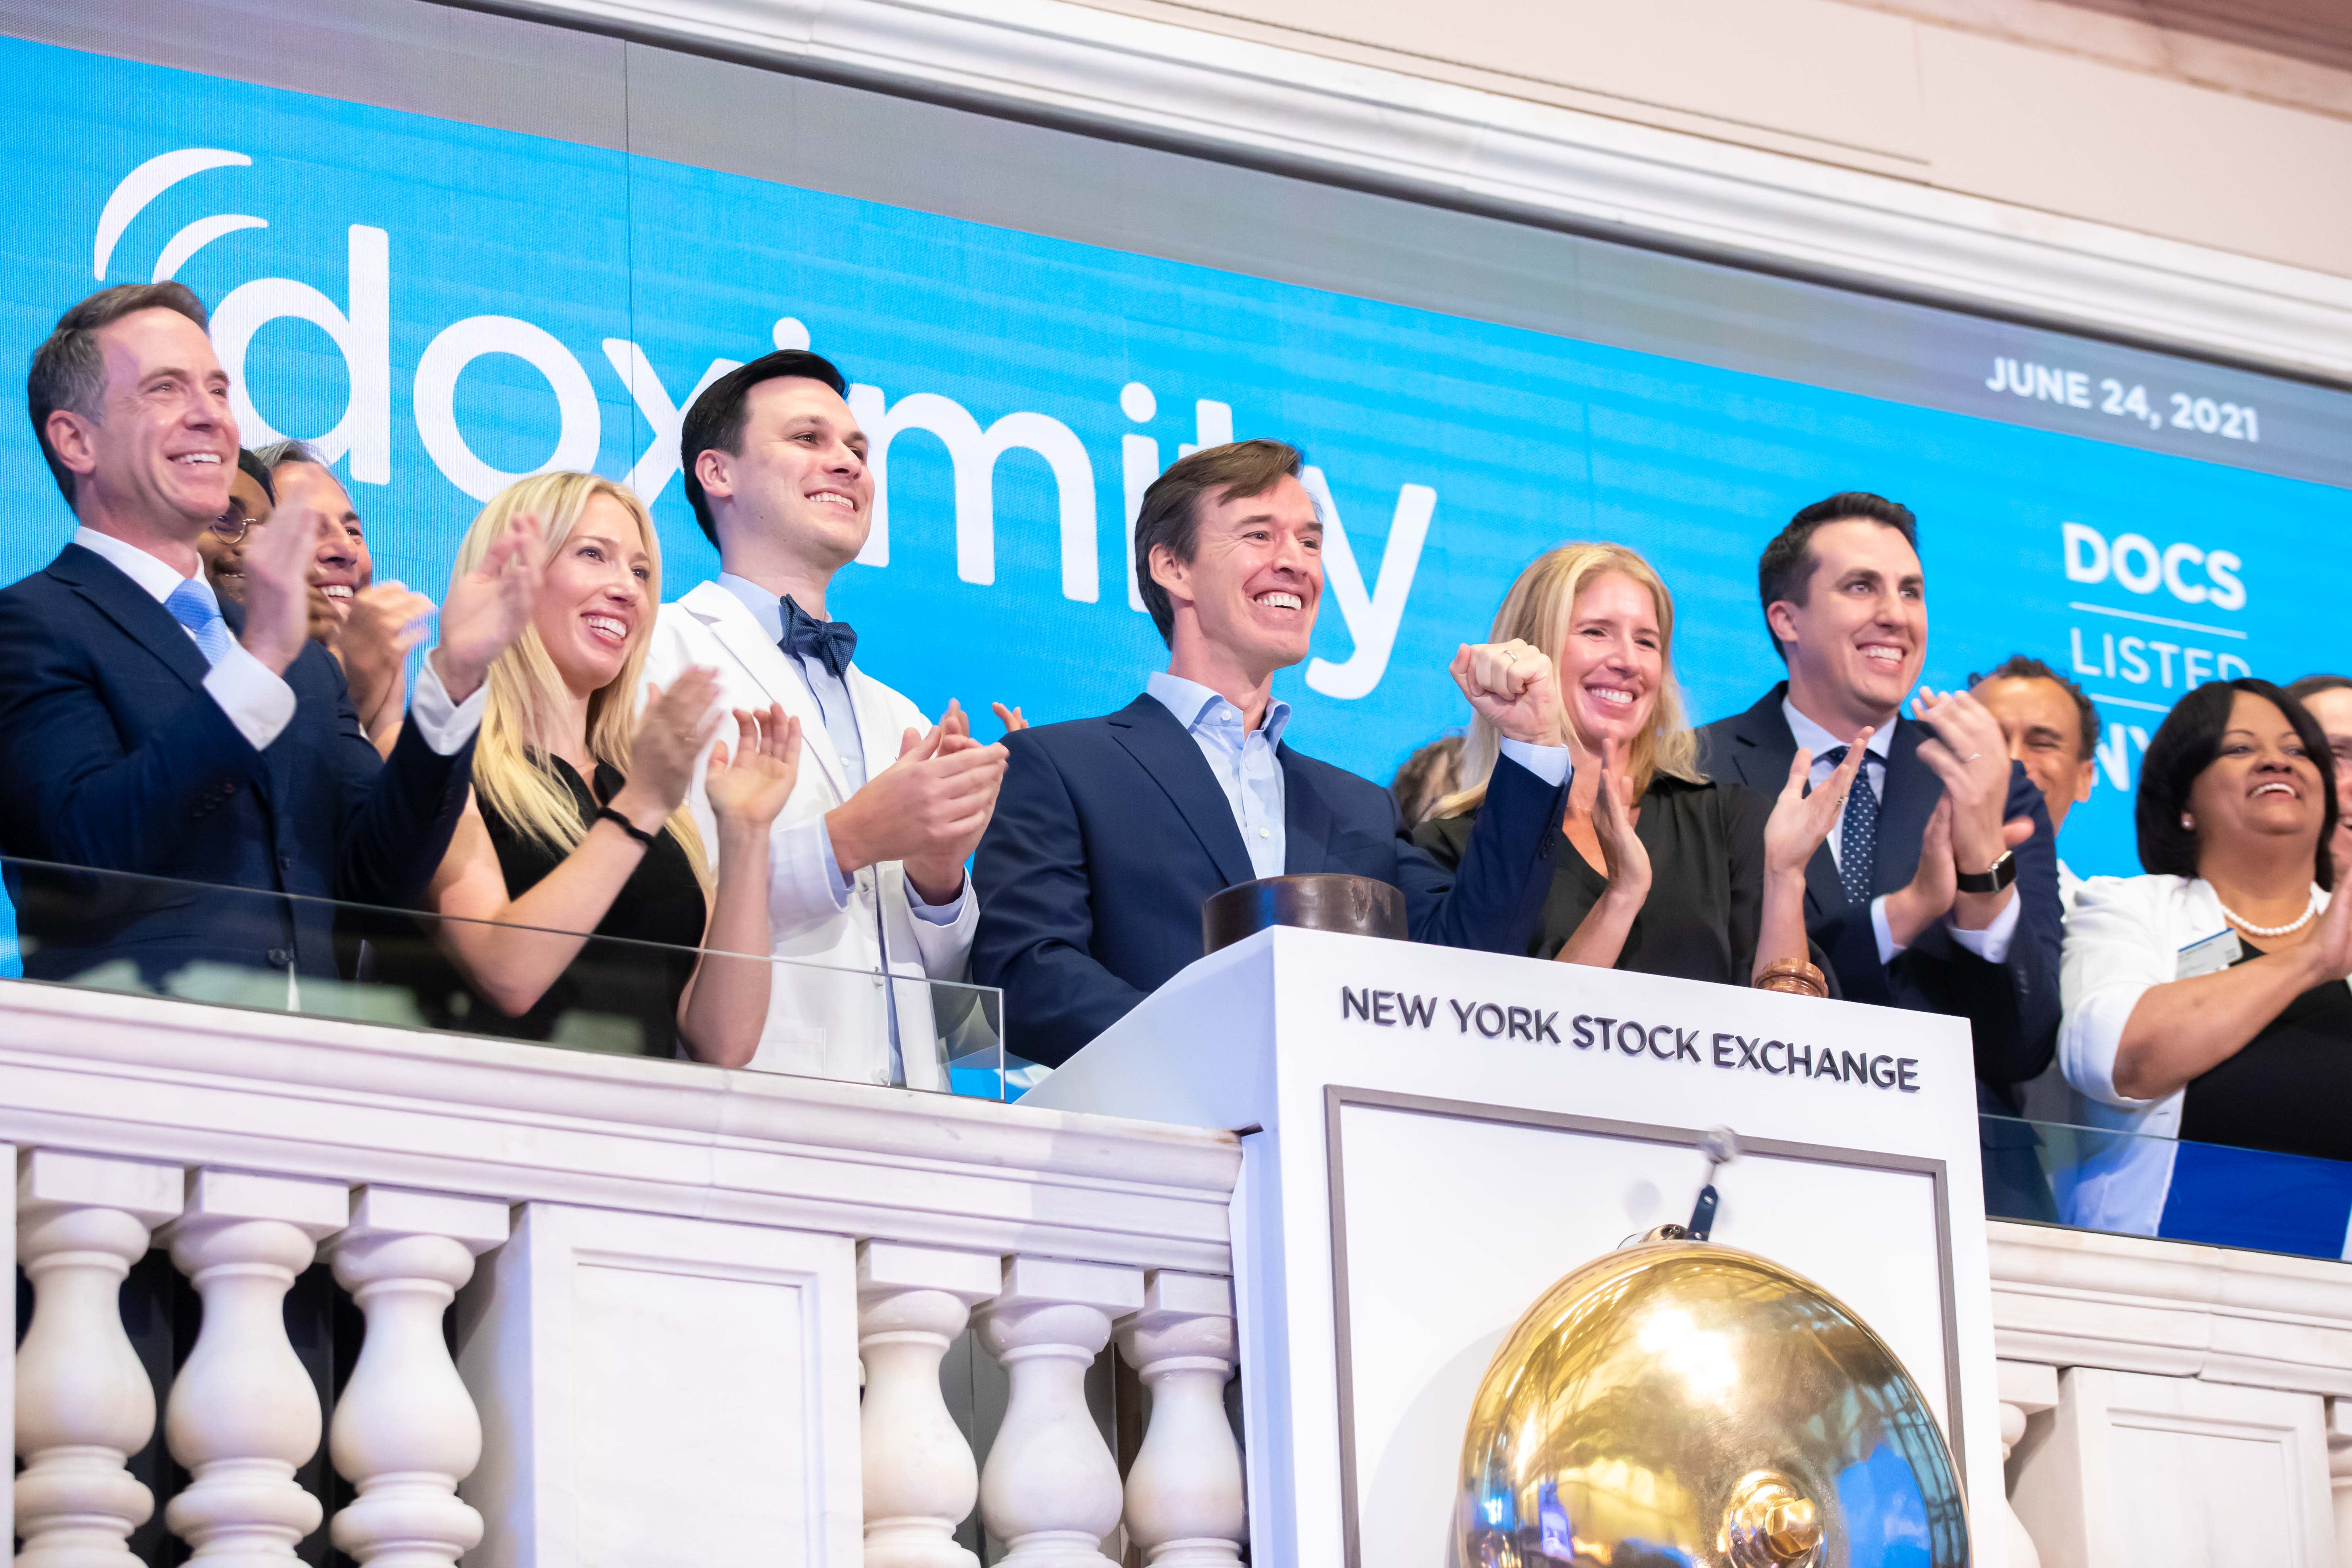 Doximity more than doubles in NYSE debut, giving health-tech company $9.4 billion market cap